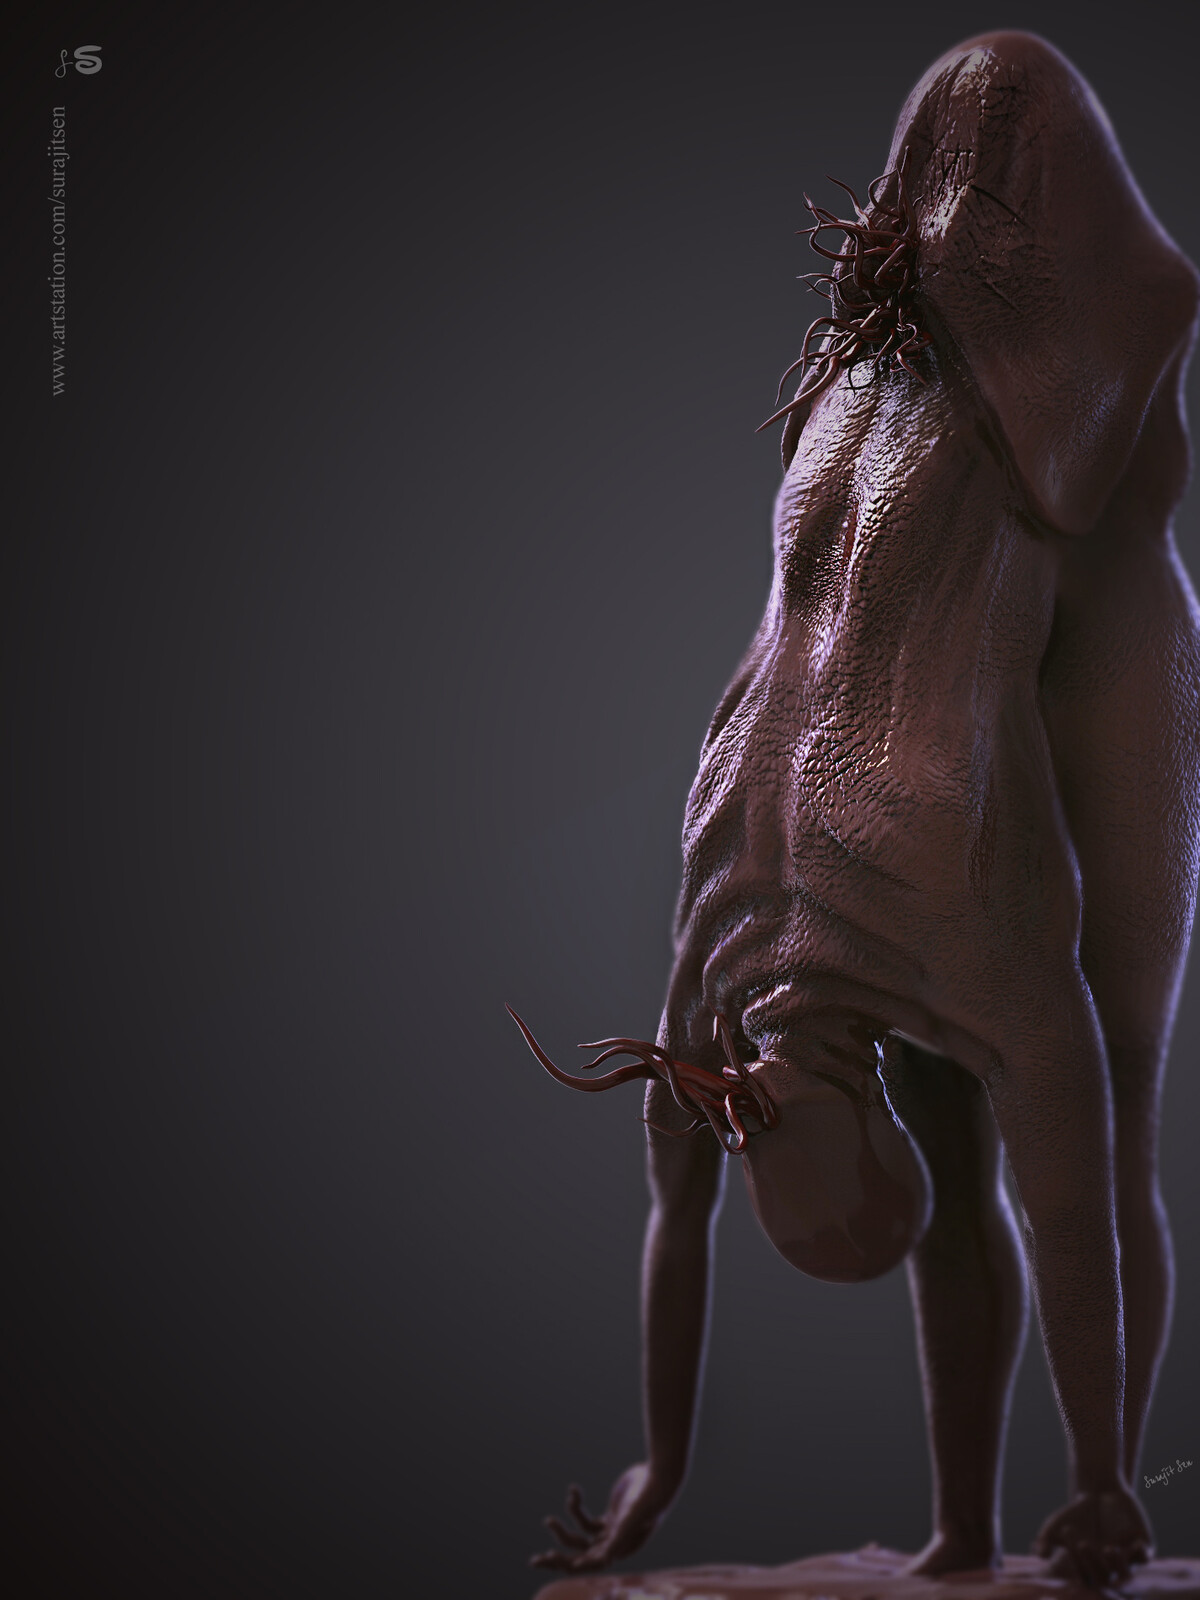 One of my old Creature ... Digital Sculpture... Found that today .. Wish to share:)